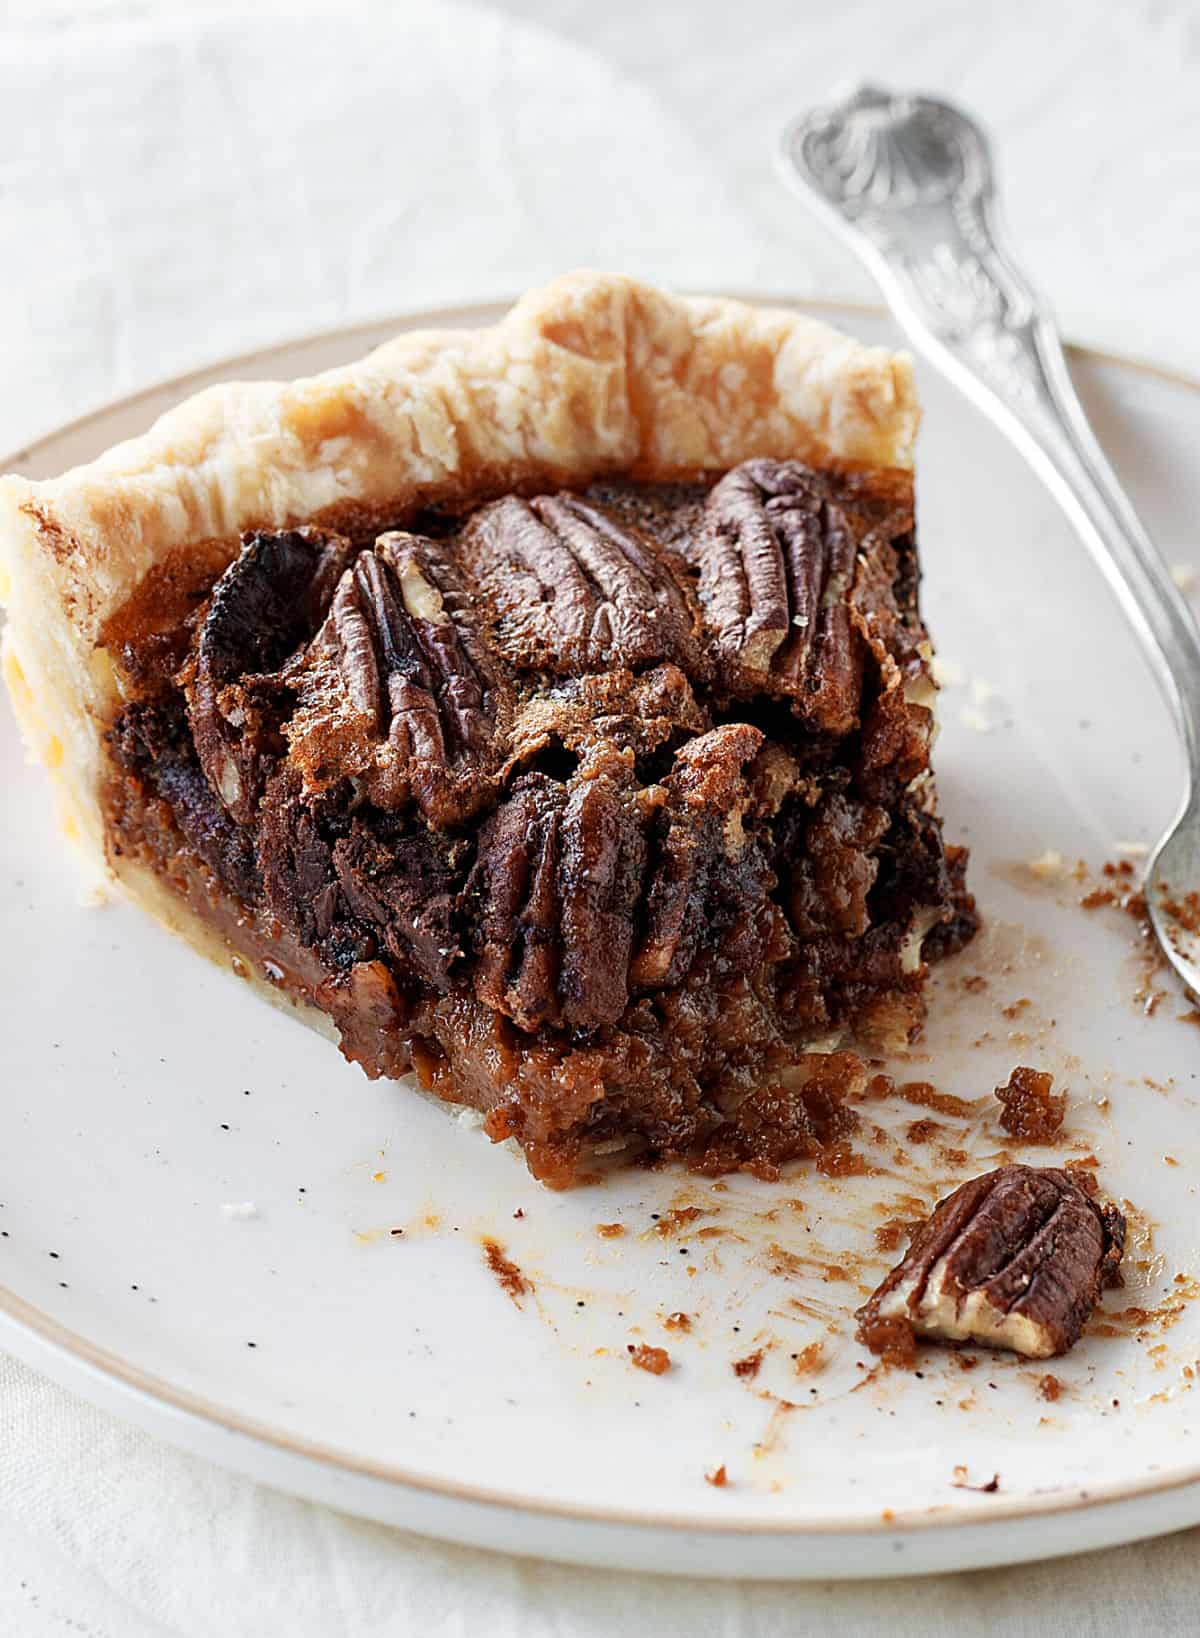 Eaten slice of pecan pie with chocolate on a whitish plate, a silver fork